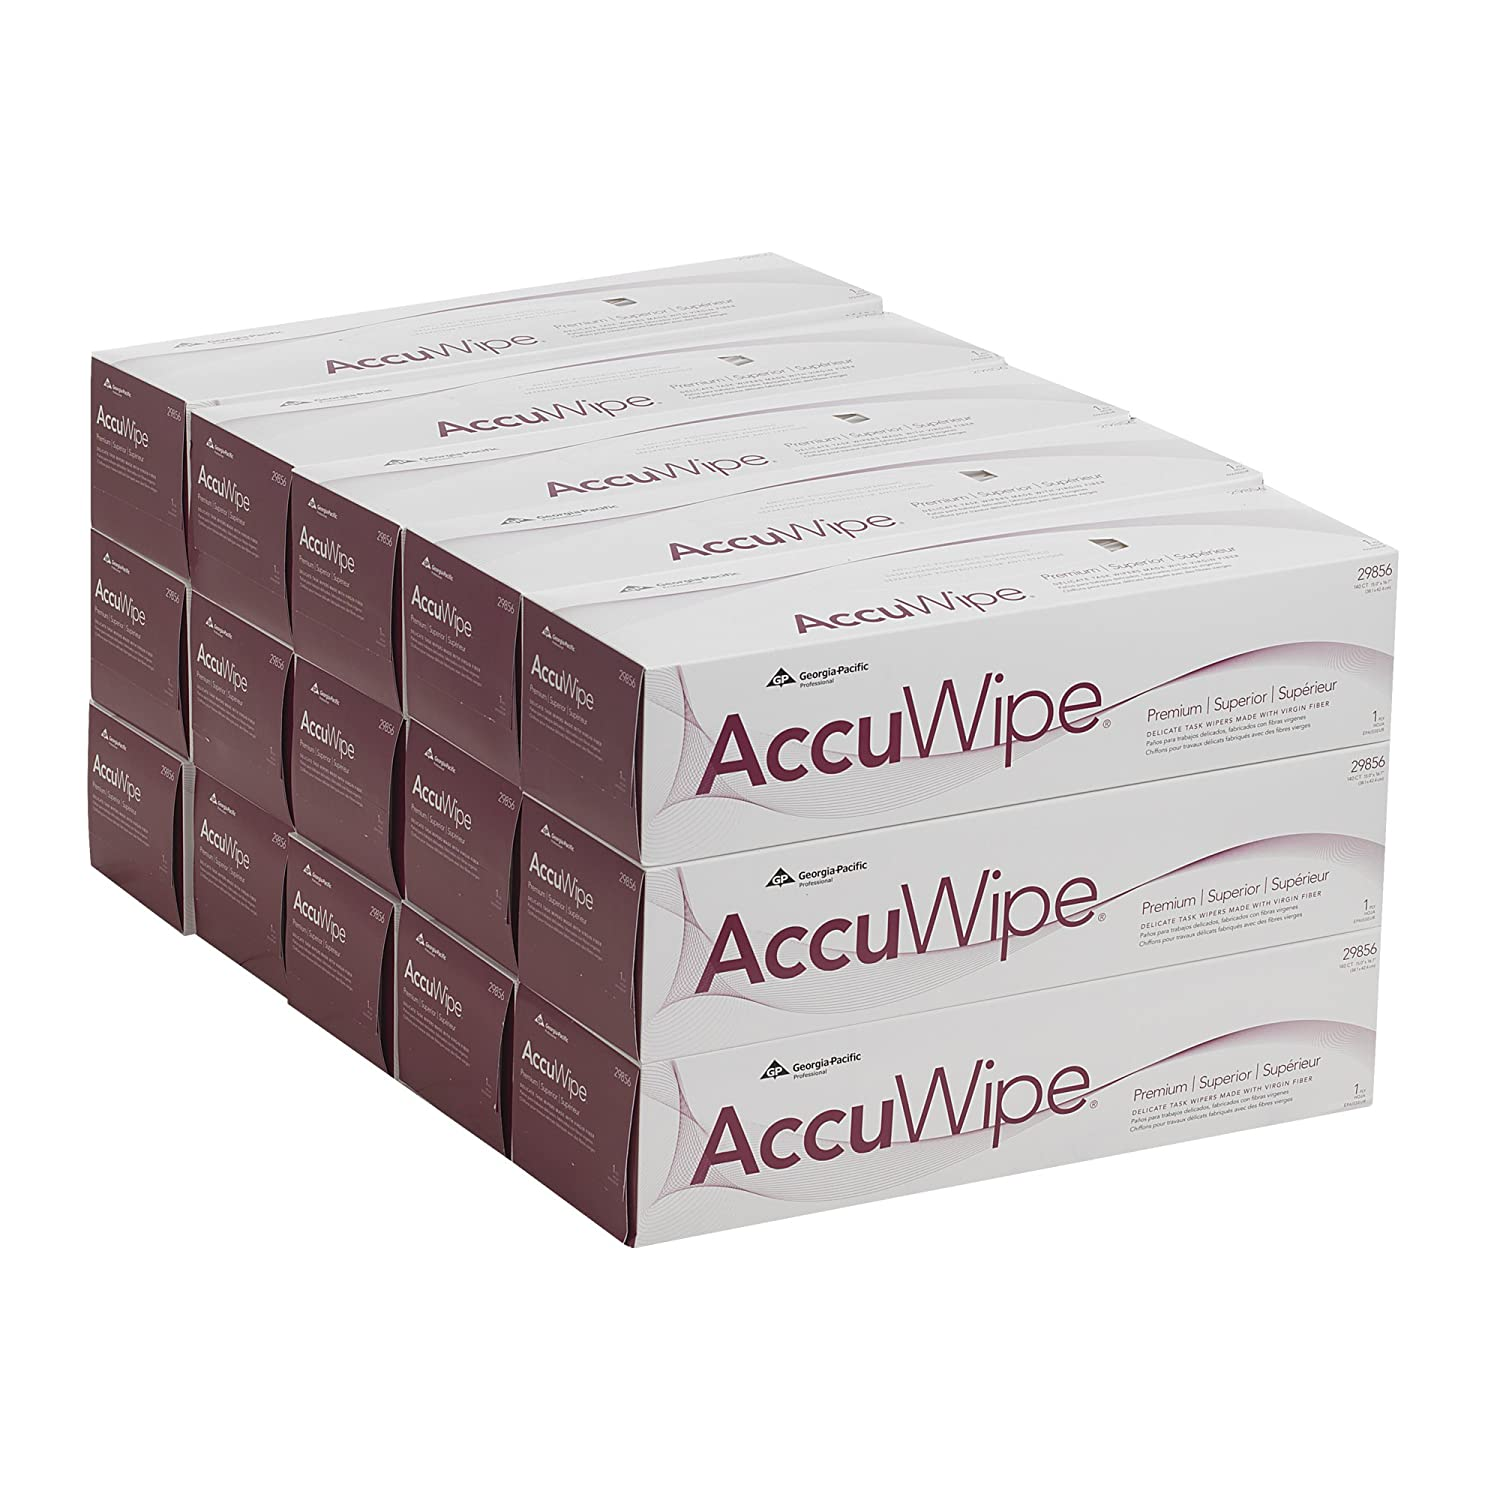 Georgia-Pacific AccuWipe 29856 White Virgin Fiber Premium 1-Ply Technical Cleaning Wipers 15 Boxes of 140 15 Width x 16-11//16 Length